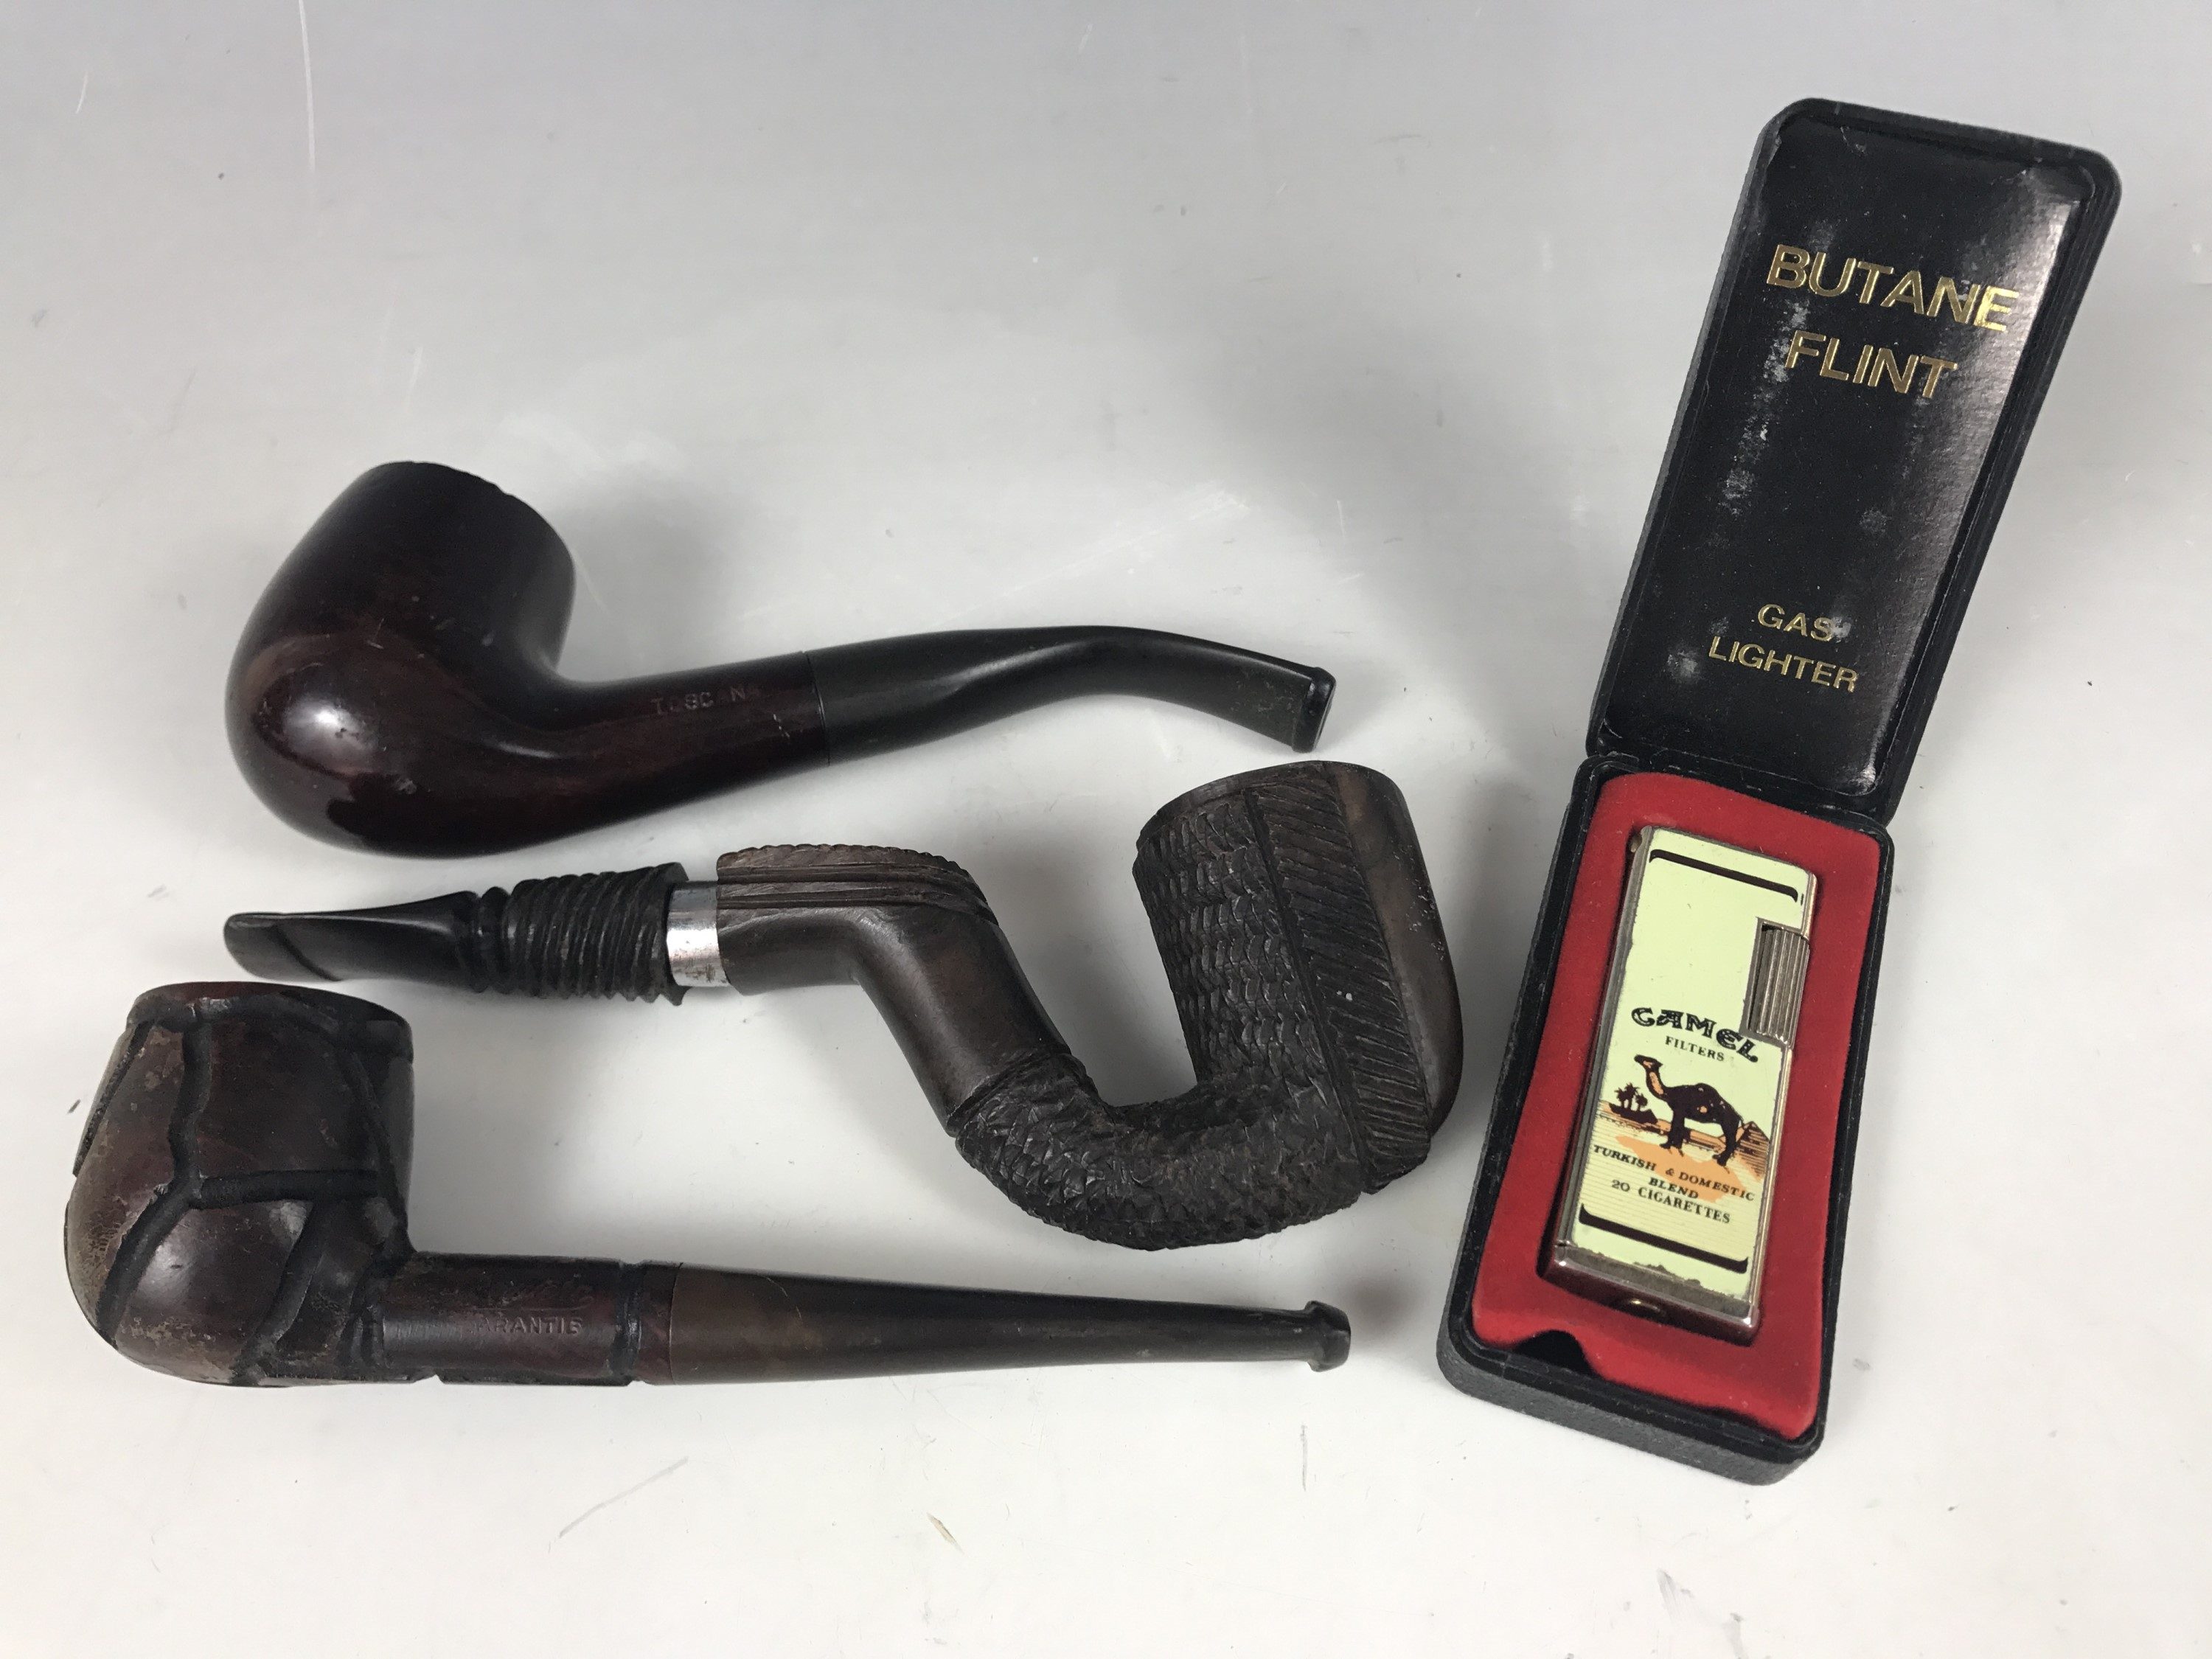 Lot 43 - A vintage briar wood pipe together with two other pipes and a cased Camel Filters lighter